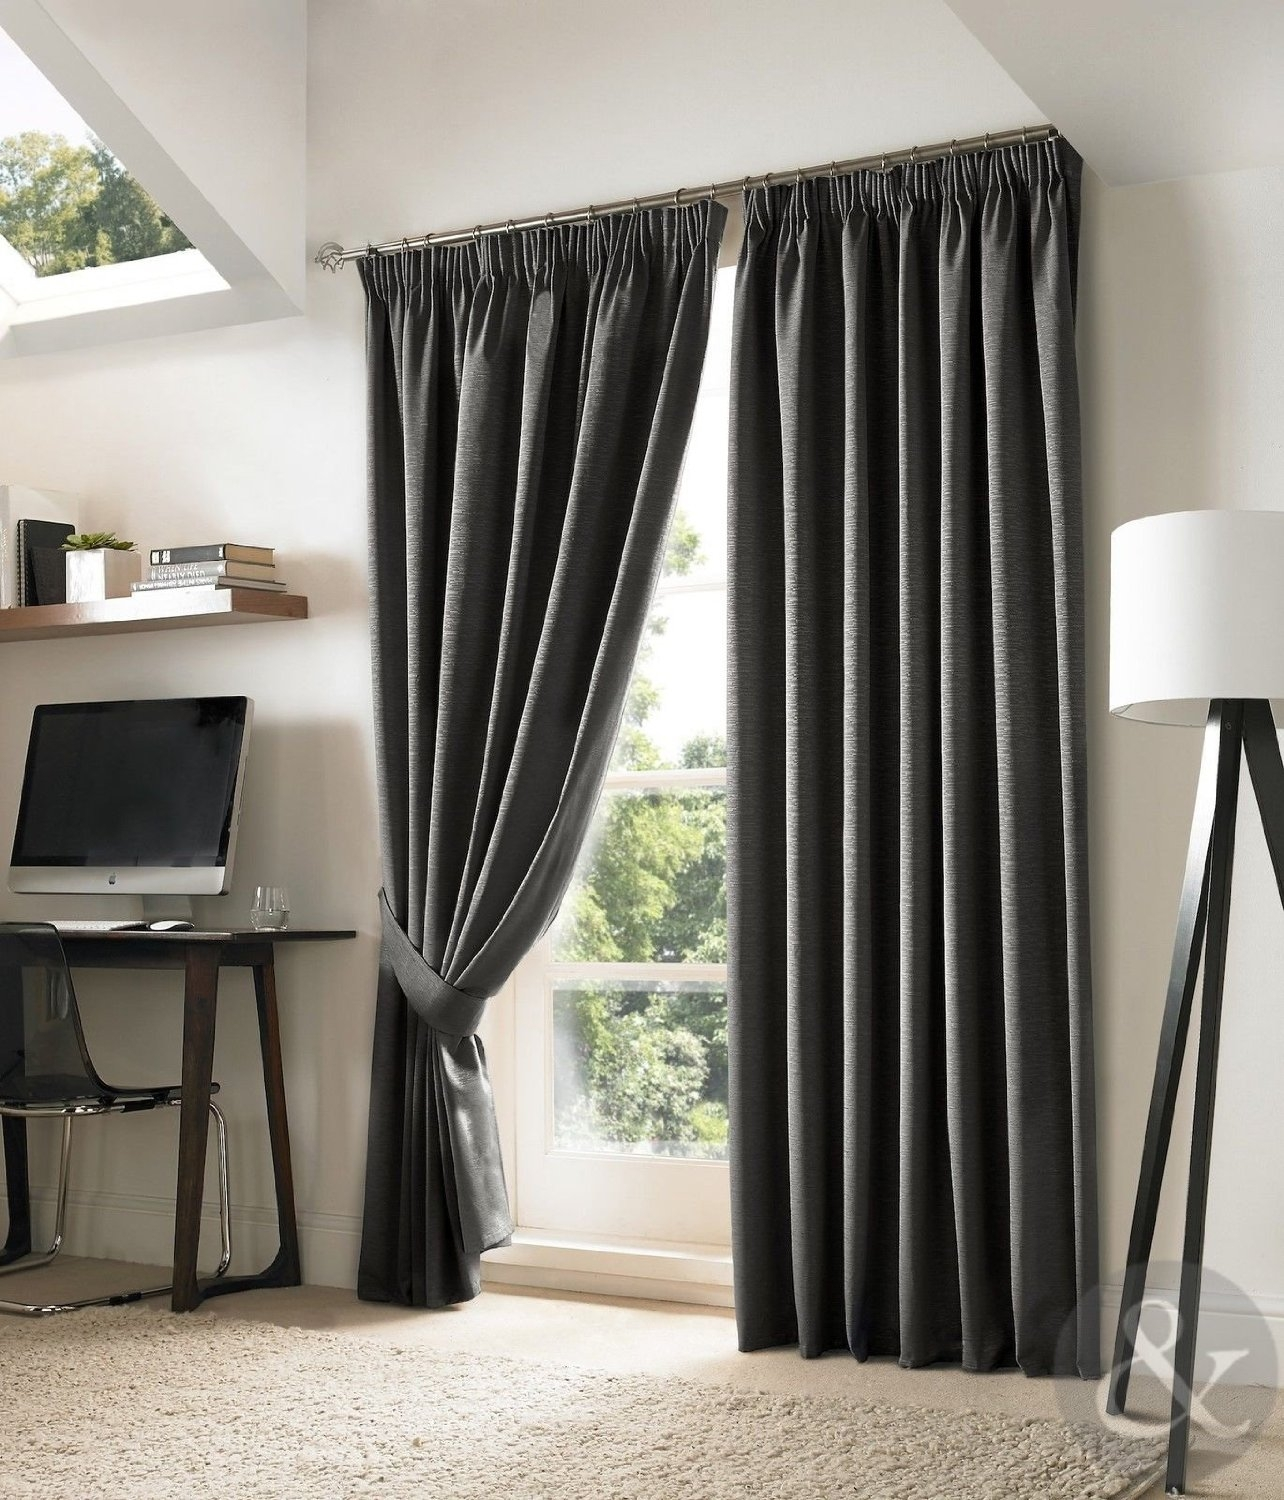 New Blackout Curtains Luxury Fully Lined Embroidered Pencil With Regard To Thick Grey Curtains (Image 12 of 15)